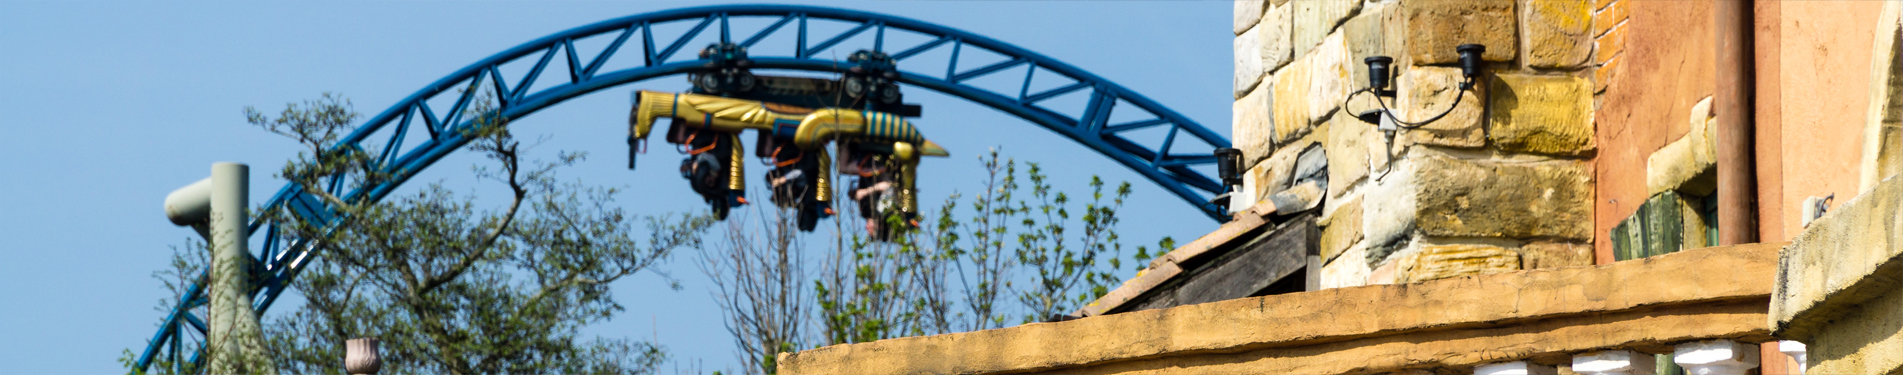 Anubis the Ride (Plopsaland De Panne)